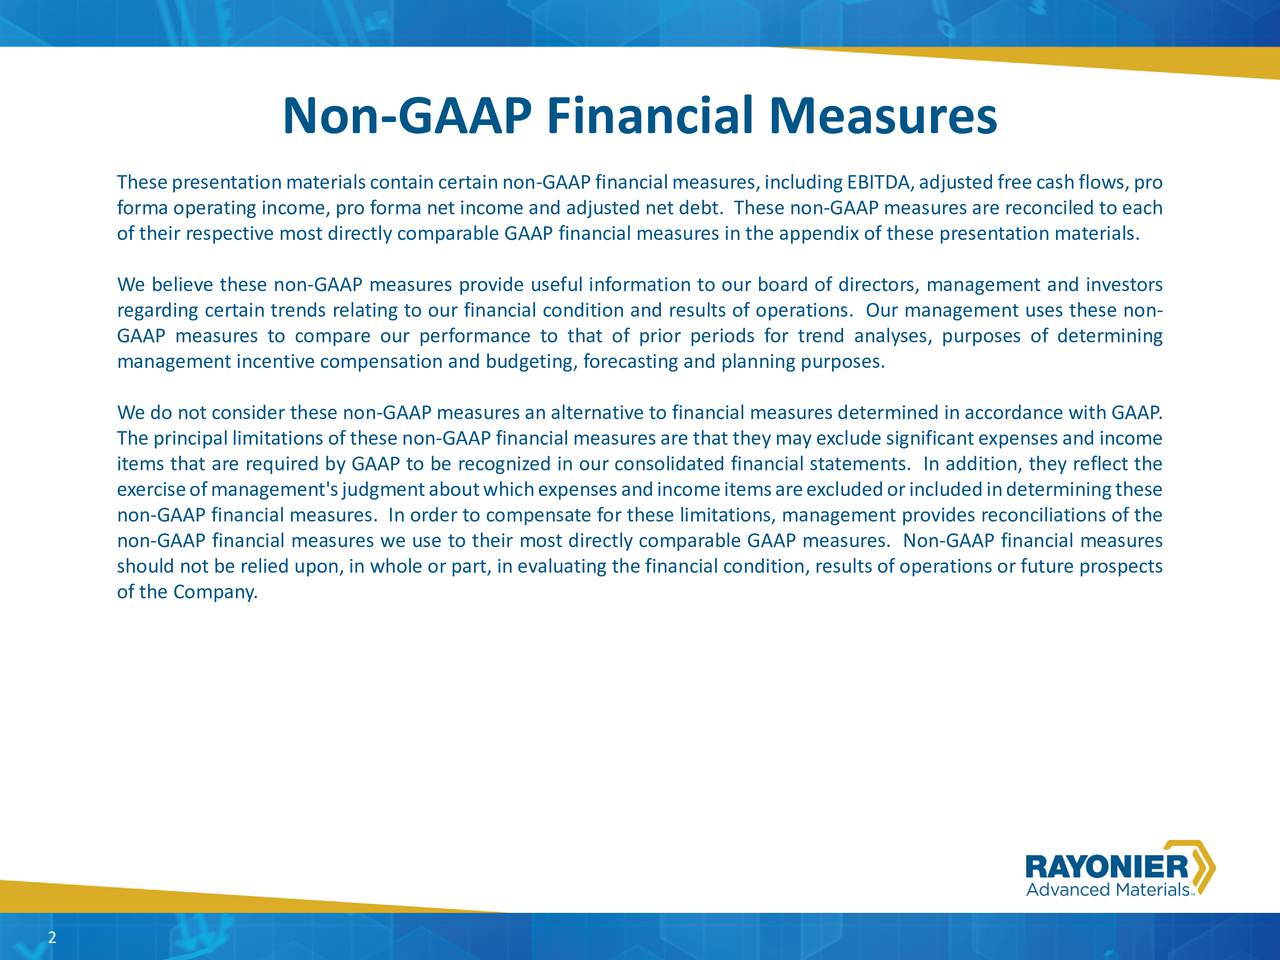 Thesepresentationmaterialscontaincertainnon-GAAPfinancialmeasures,includingEBITDA,adjustedfreecashflows,pro forma operating income, pro forma net income and adjusted net debt. These non-GAAP measures are reconciled to each of their respective most directly comparable GAAP financial measures in the appendix of these presentation materials. We believe these non-GAAP measures provide useful information to our board of directors, management and investors regarding certain trends relating to our financial condition and results of operations. Our management uses these non- GAAP measures to compare our performance to that of prior periods for trend analyses, purposes of determining management incentive compensation and budgeting, forecasting and planning purposes. We do not consider these non-GAAP measures an alternative to financial measures determined in accordance with GAAP. Theprincipallimitationsofthesenon-GAAPfinancialmeasuresarethattheymayexcludesignificantexpensesandincome items that are required by GAAP to be recognized in our consolidated financial statements. In addition, they reflect the exerciseofmanagement'sjudgmentaboutwhichexpensesandincomeitemsareexcludedorincludedindeterminingthese non-GAAP financial measures. In order to compensate for these limitations, management provides reconciliations of the non-GAAP financial measures we use to their most directly comparable GAAP measures. Non-GAAP financial measures should not be relied upon, in whole or part, in evaluating the financial condition, results of operations or future prospects of the Company. 2